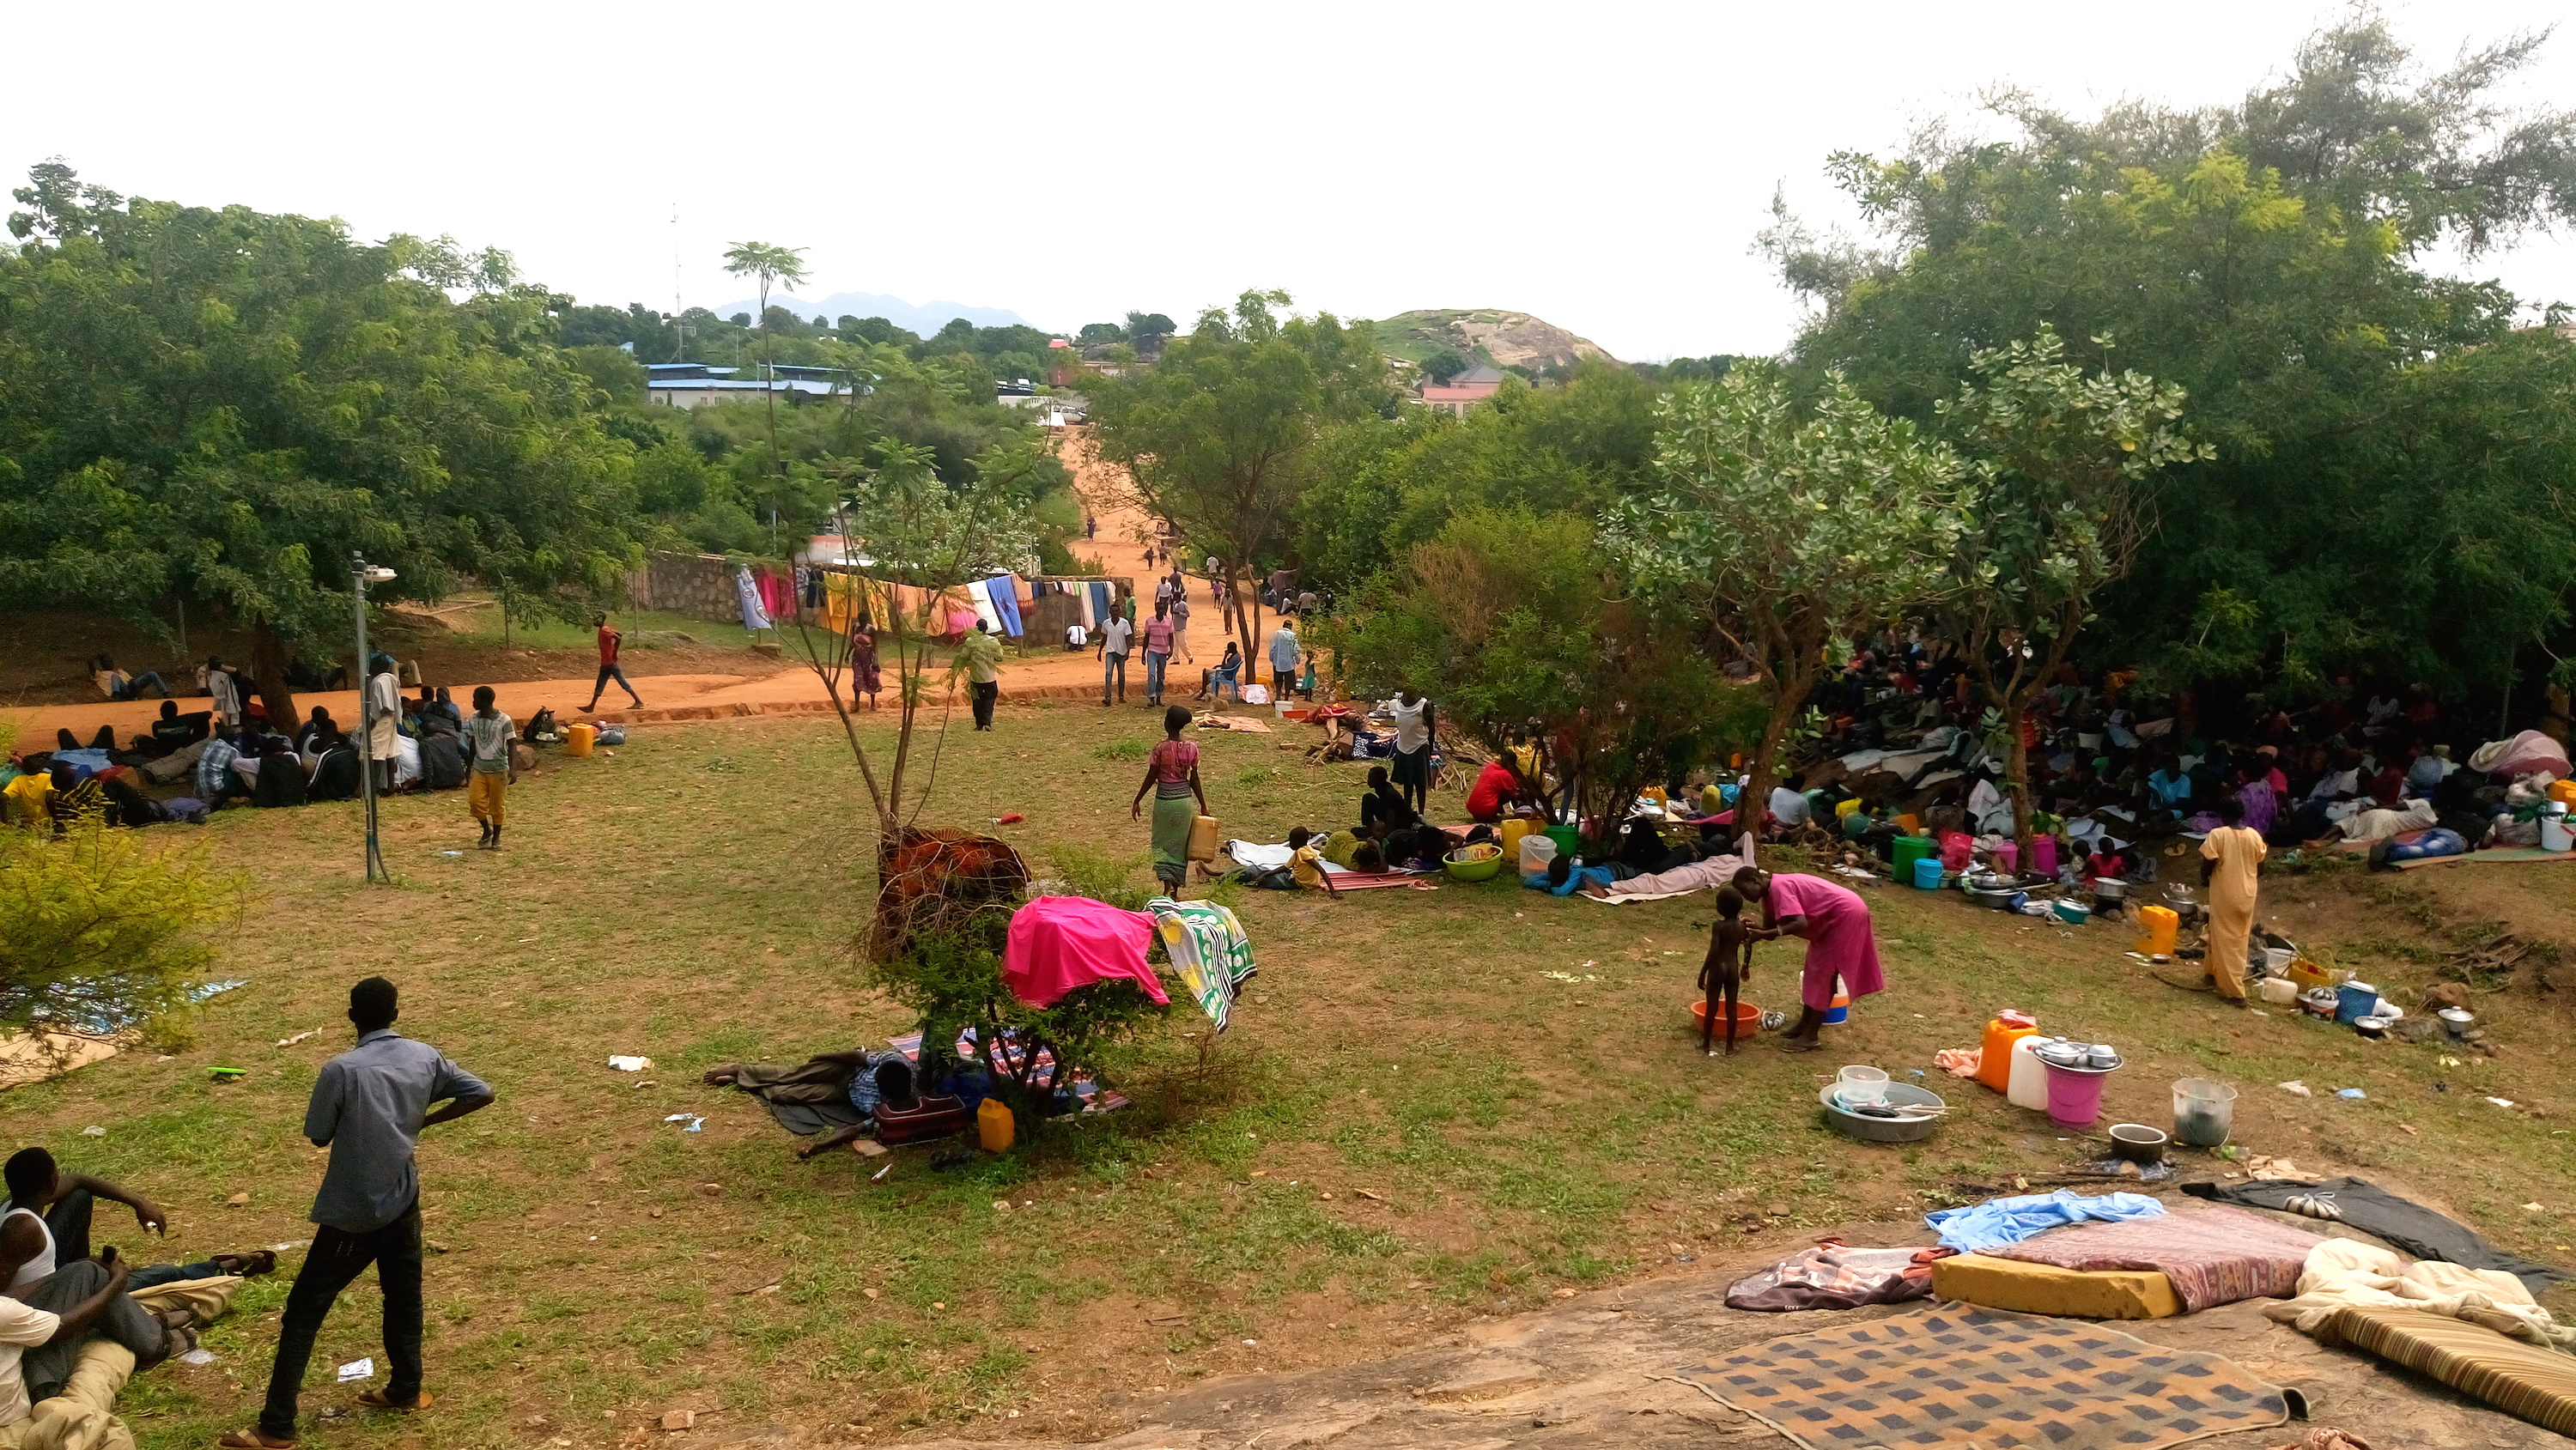 Displaced people take refuge at the WFP compound in Juba